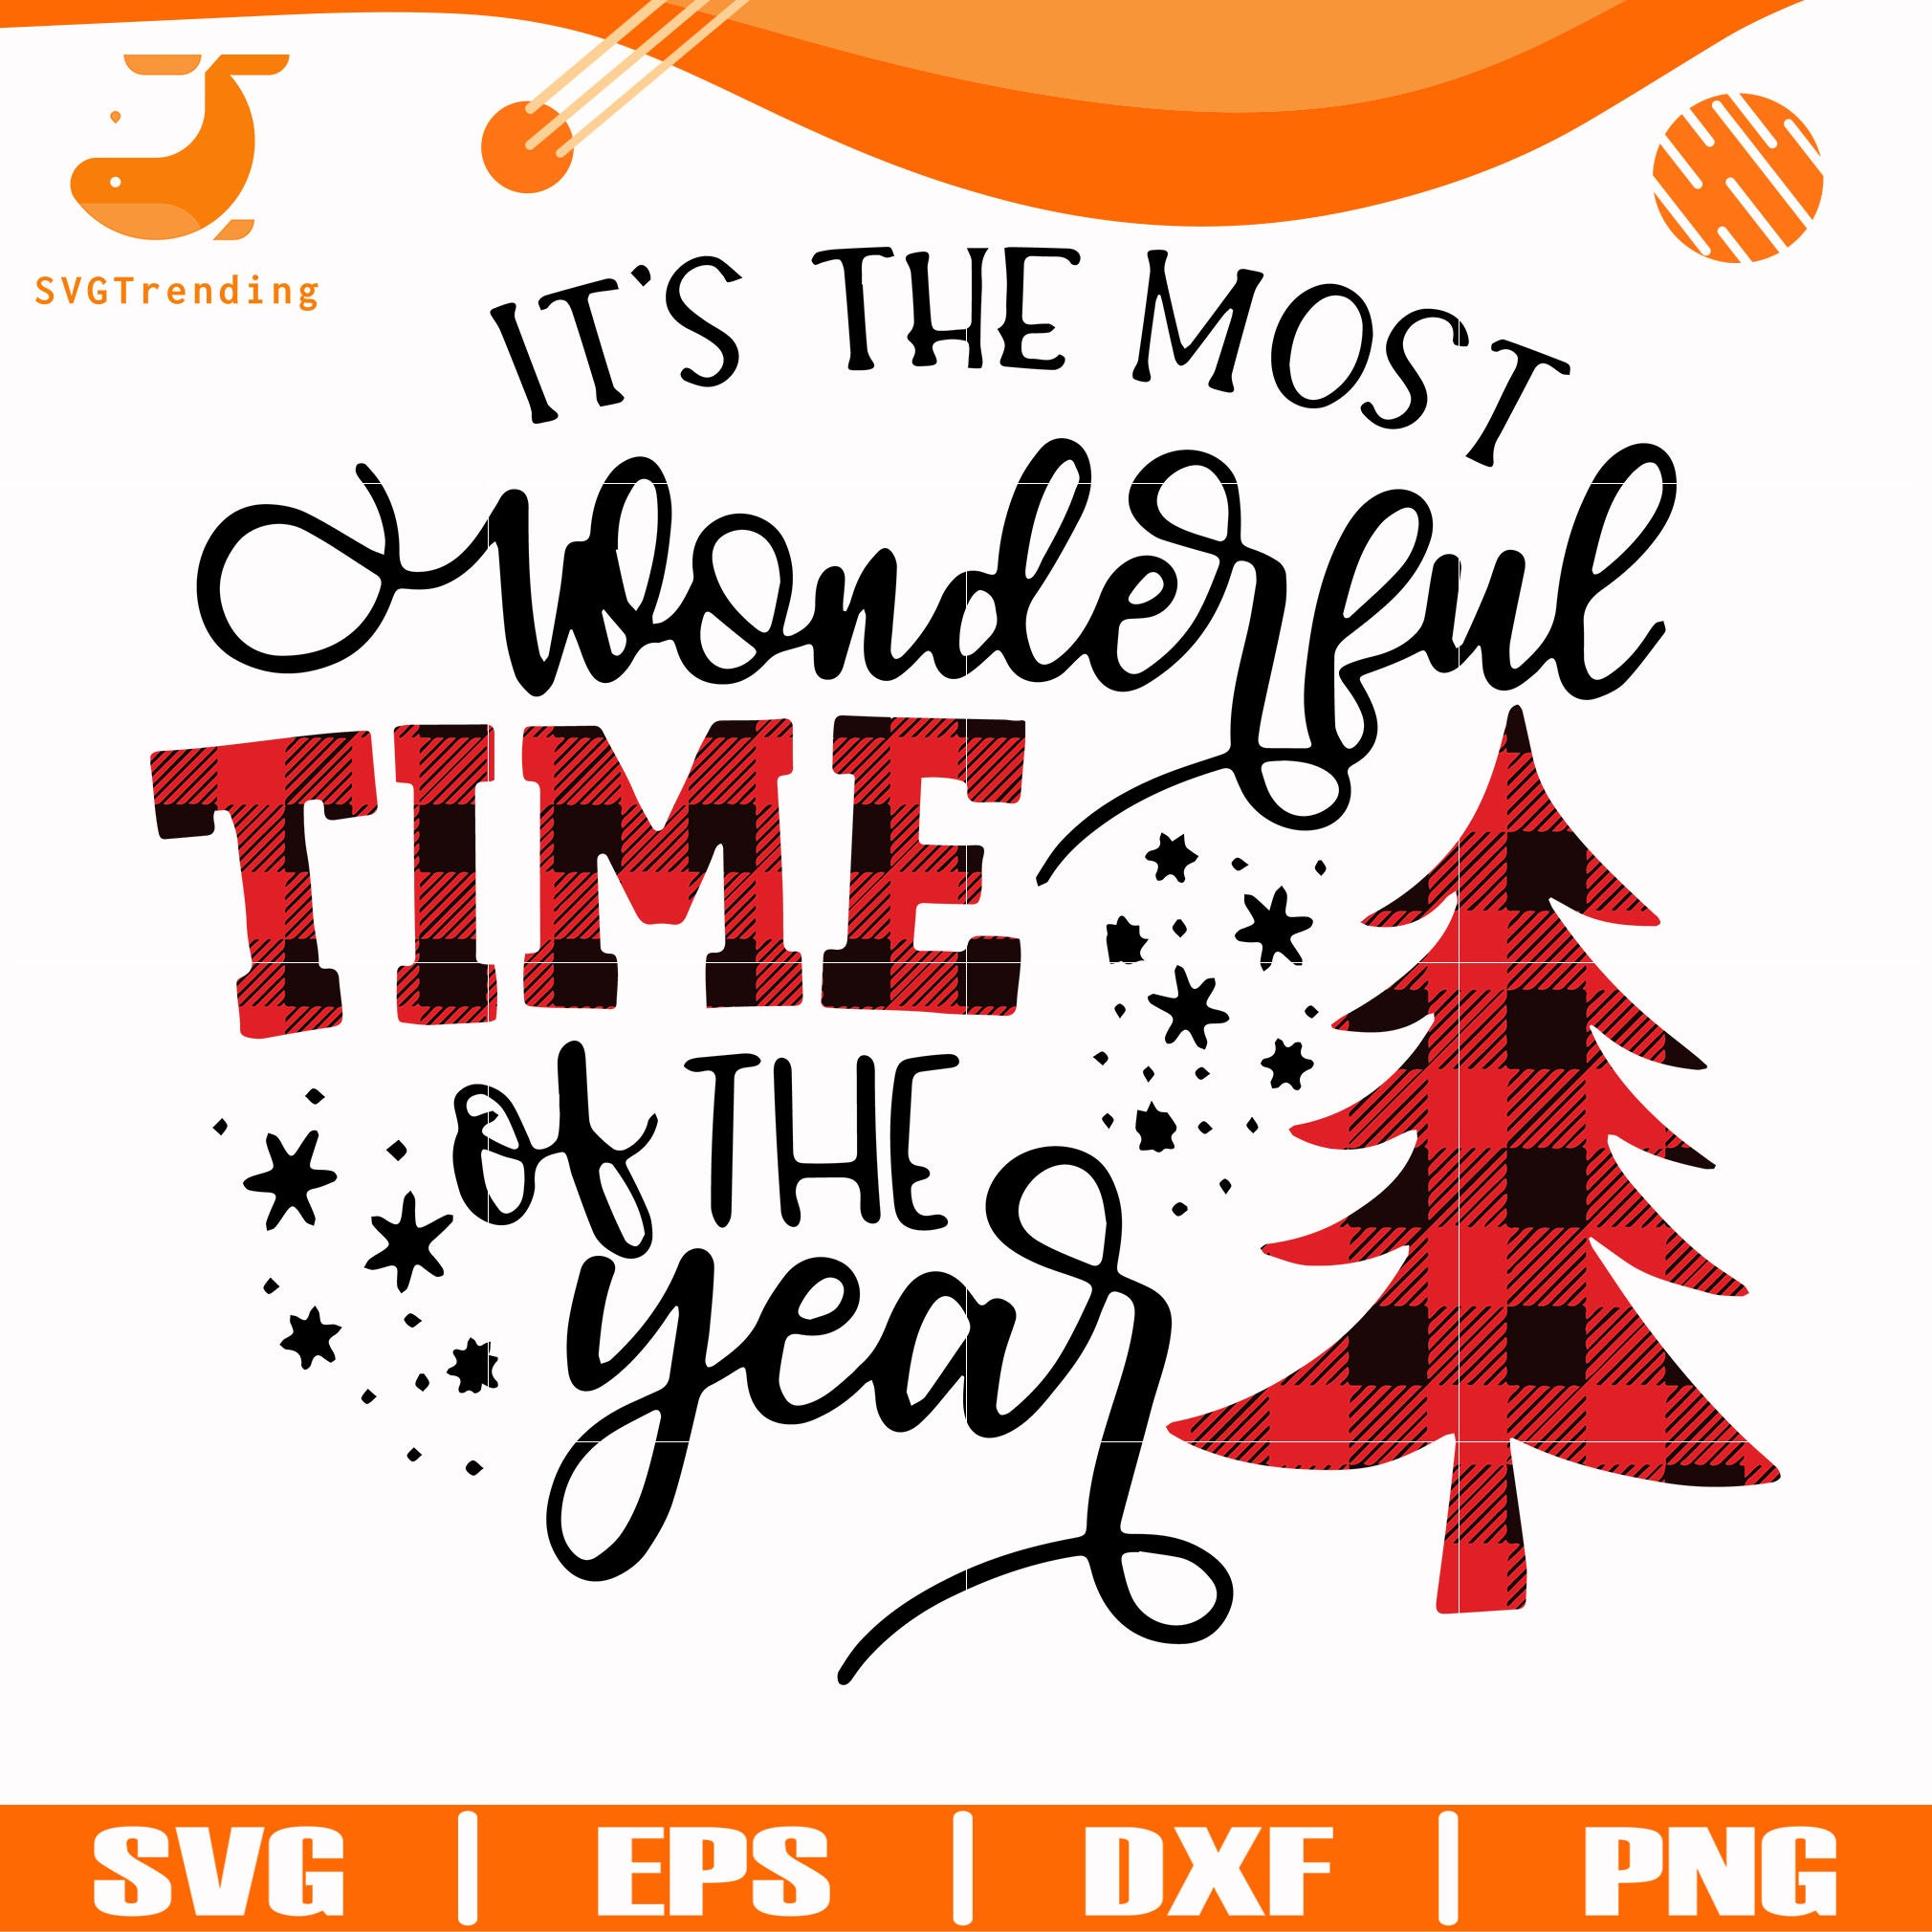 It S The Most Wonderful Time Of The Year Svg Png Dxf Eps Digital Fi Svgtrending